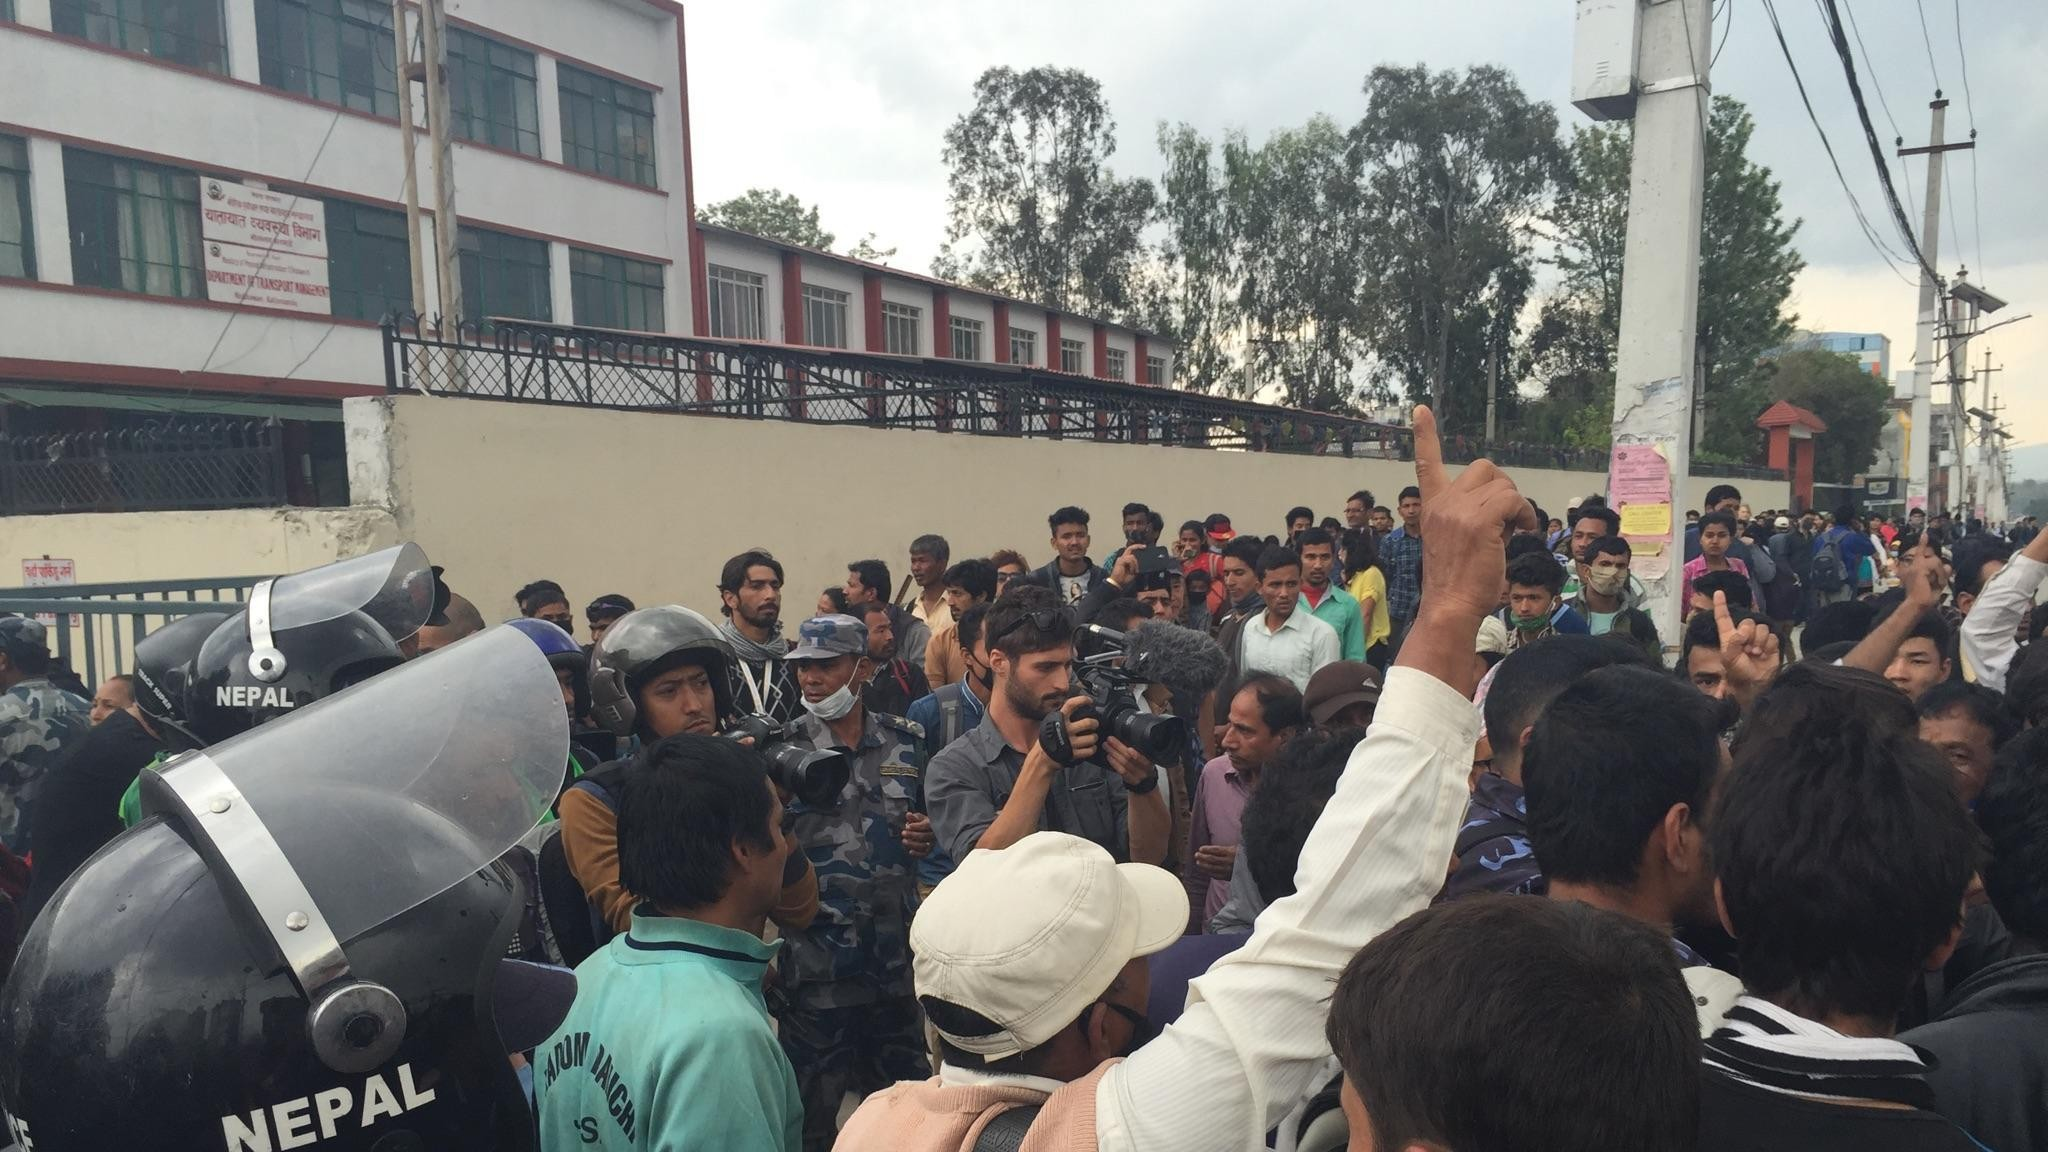 Footage Shows Nepalis Raging at Their Government Over Delay in Earthquake Relief